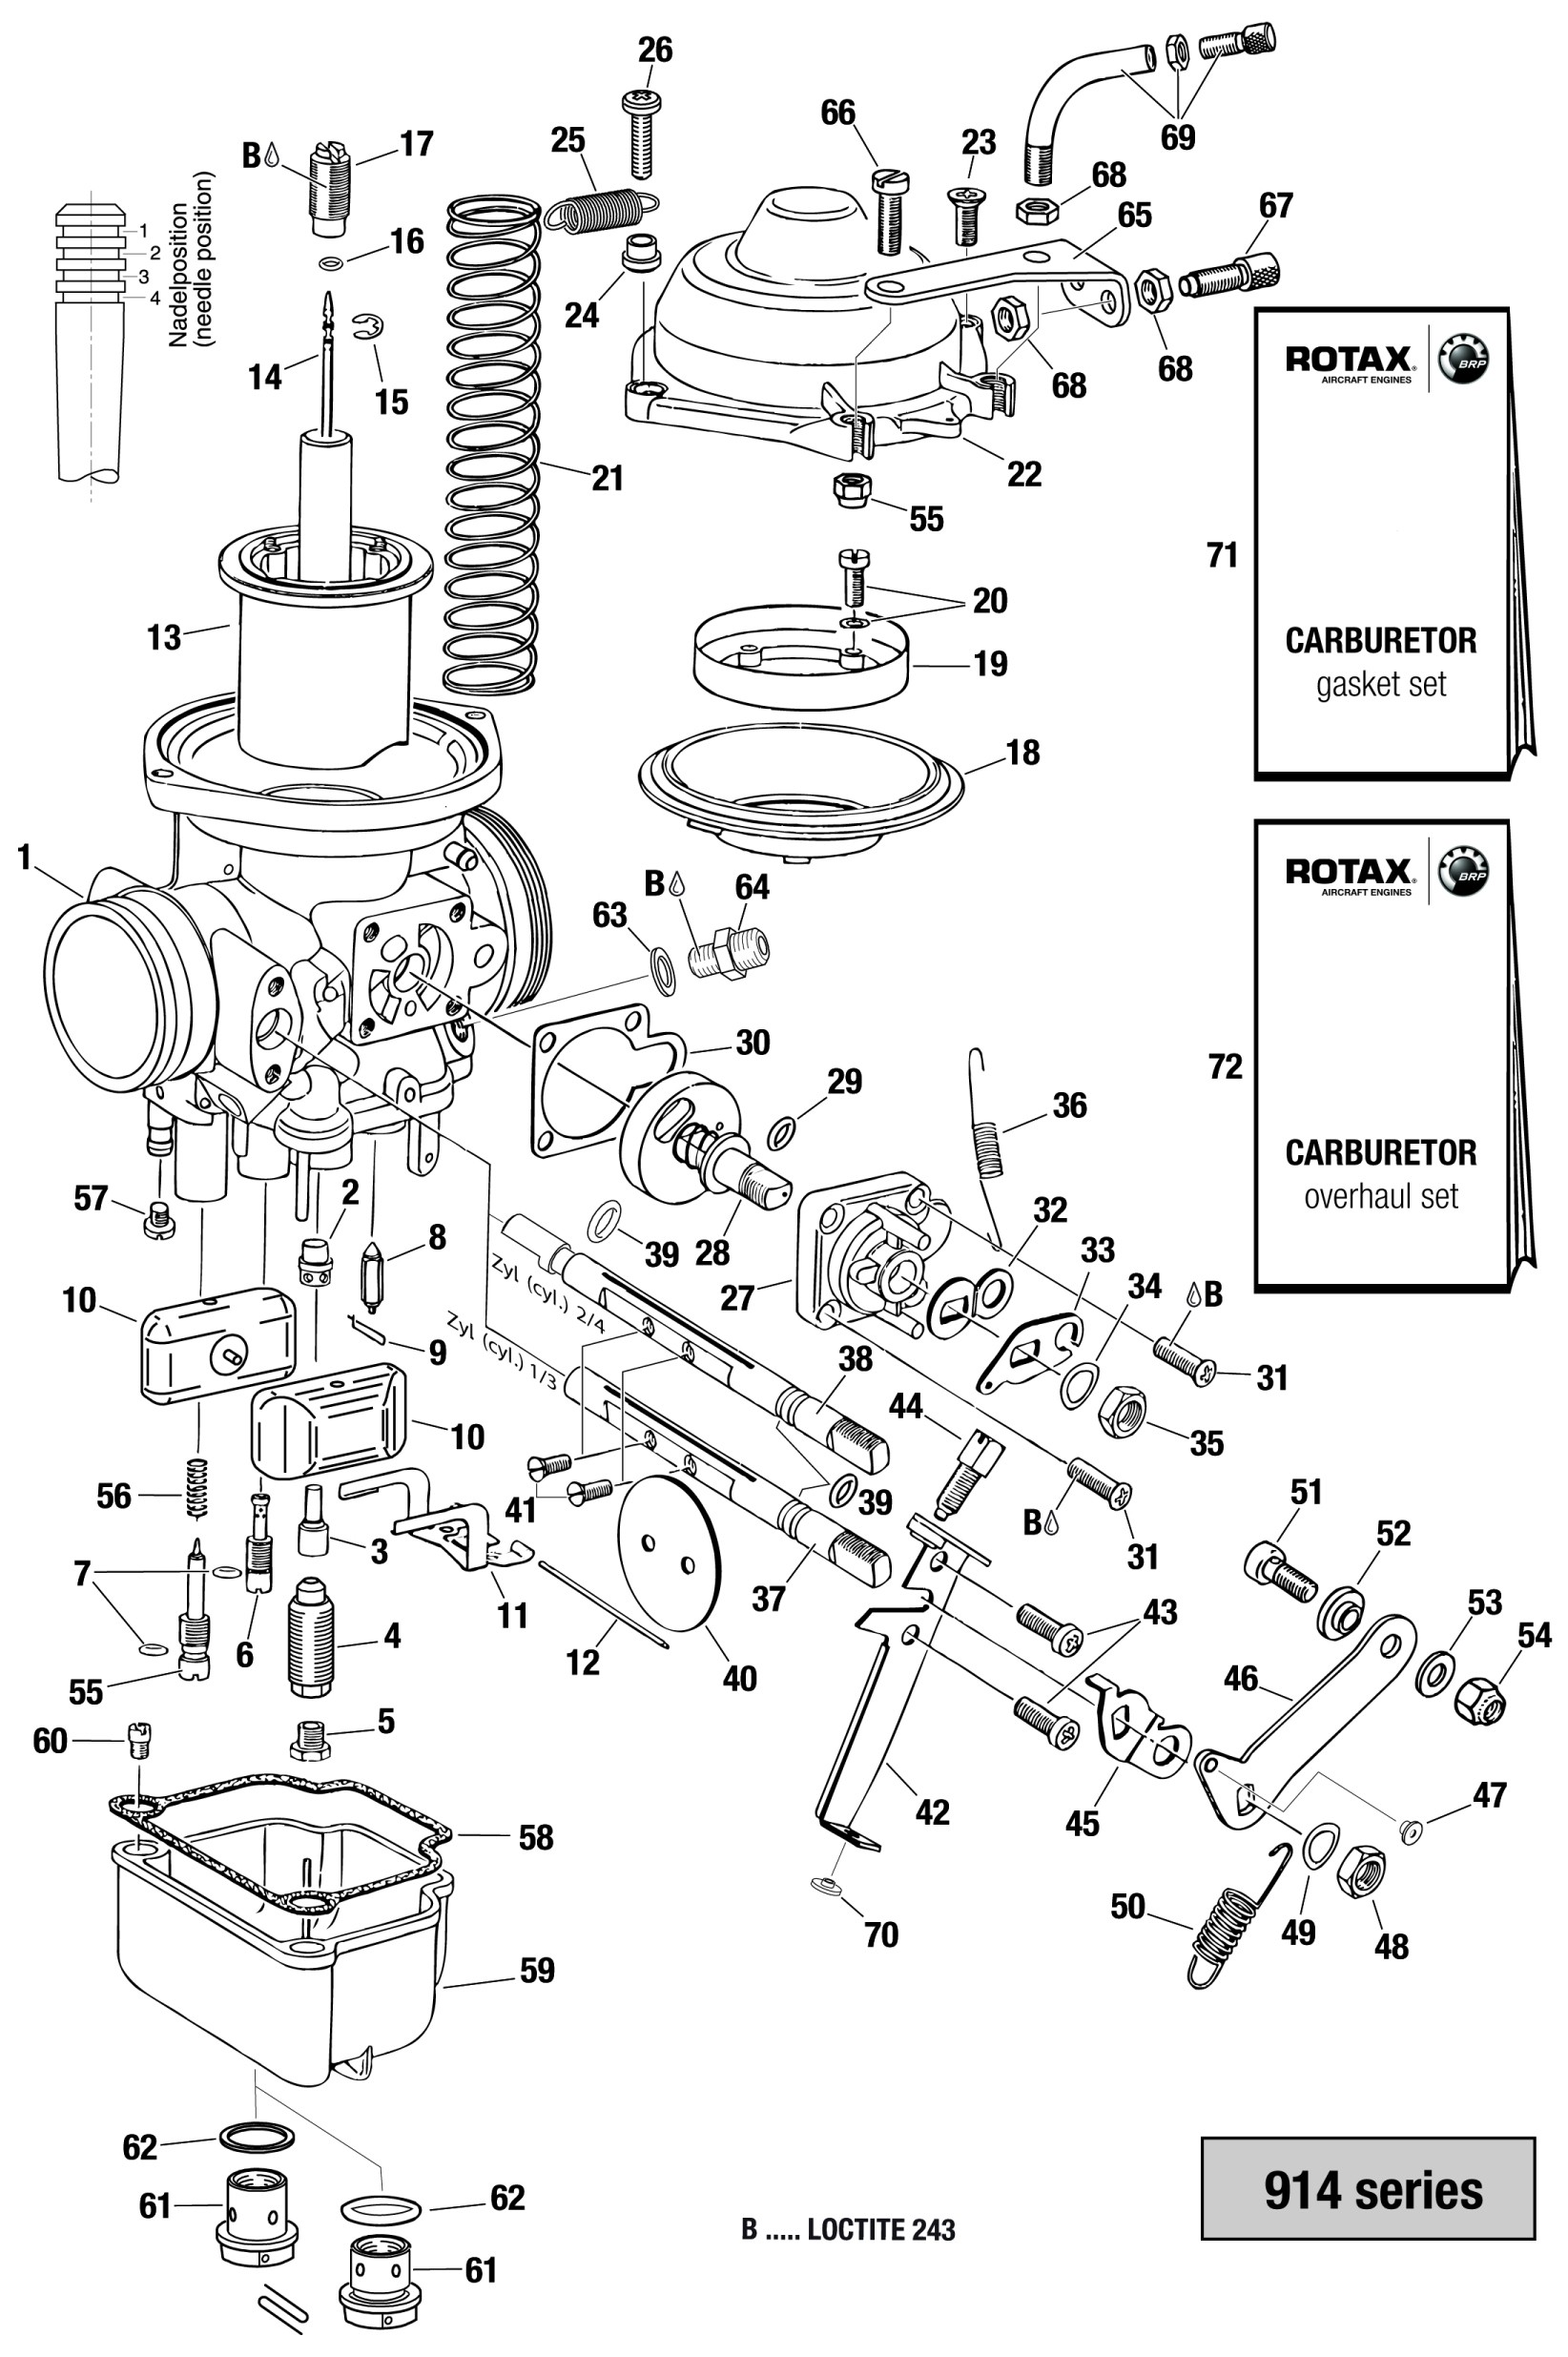 914 Series Carburetor - Single Parts - Carburetors  Fuel System - 912  U0026 914 Series Parts